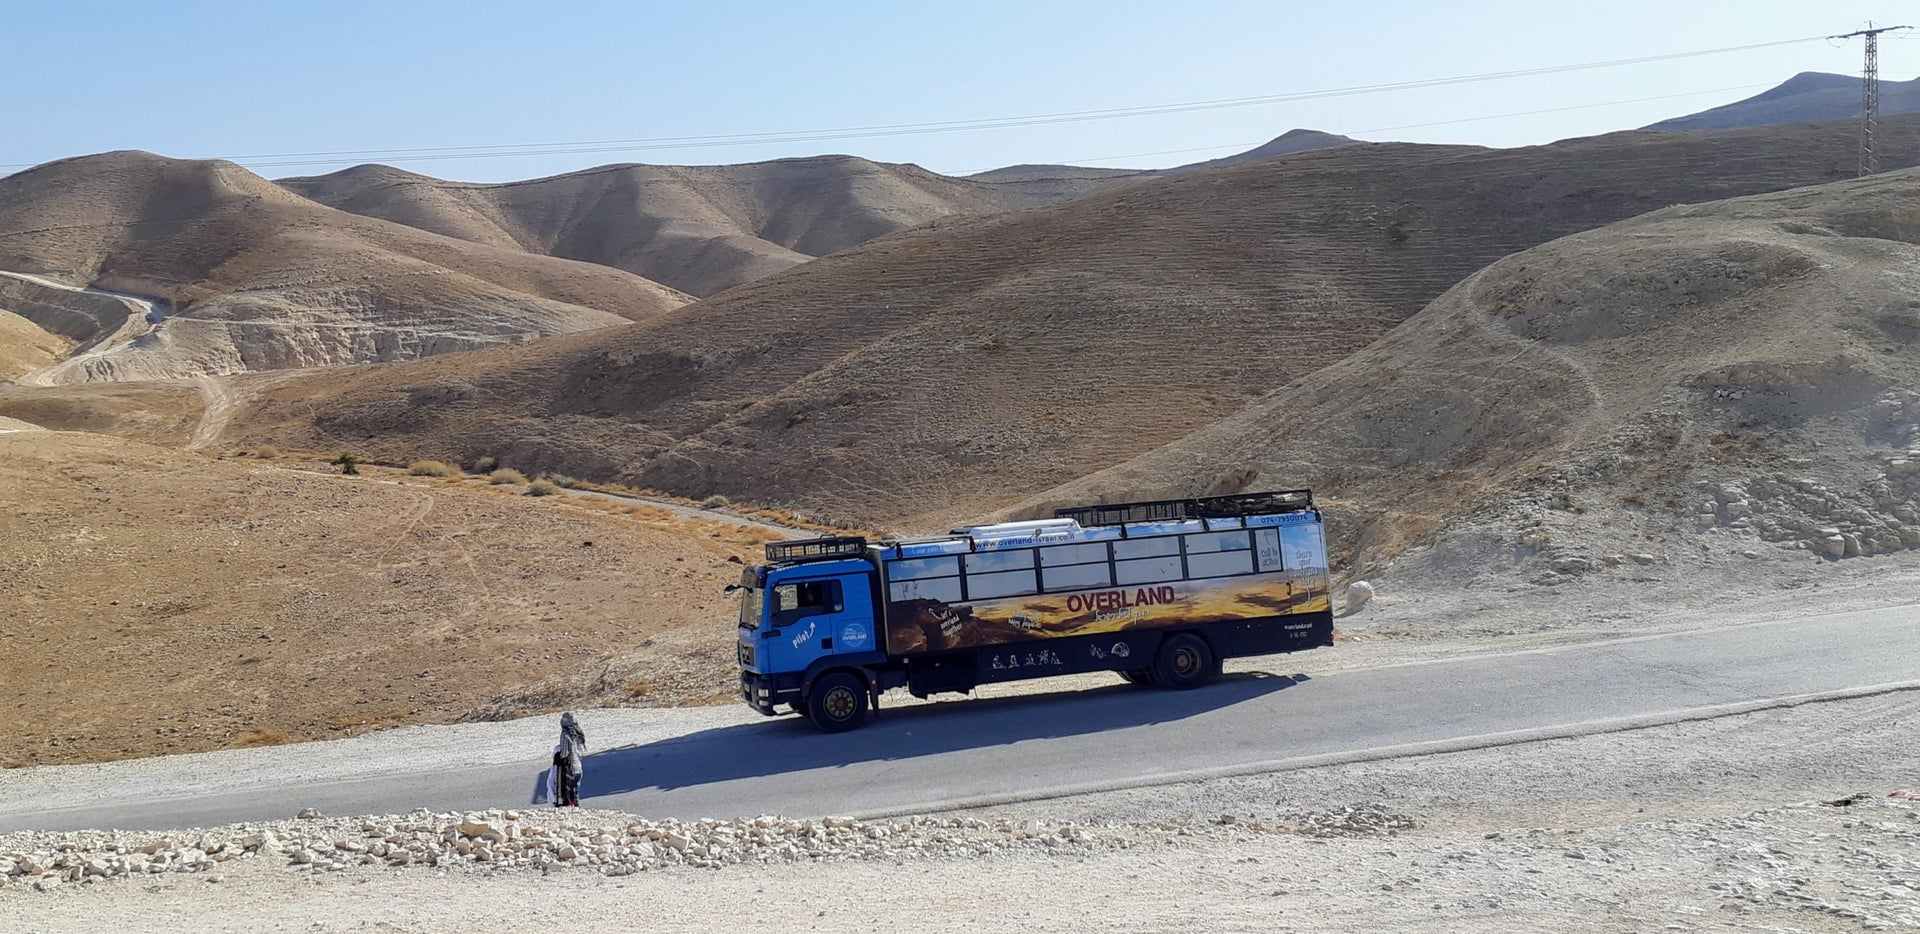 A trip through the Negev desert with an Overland Israel vehicle.